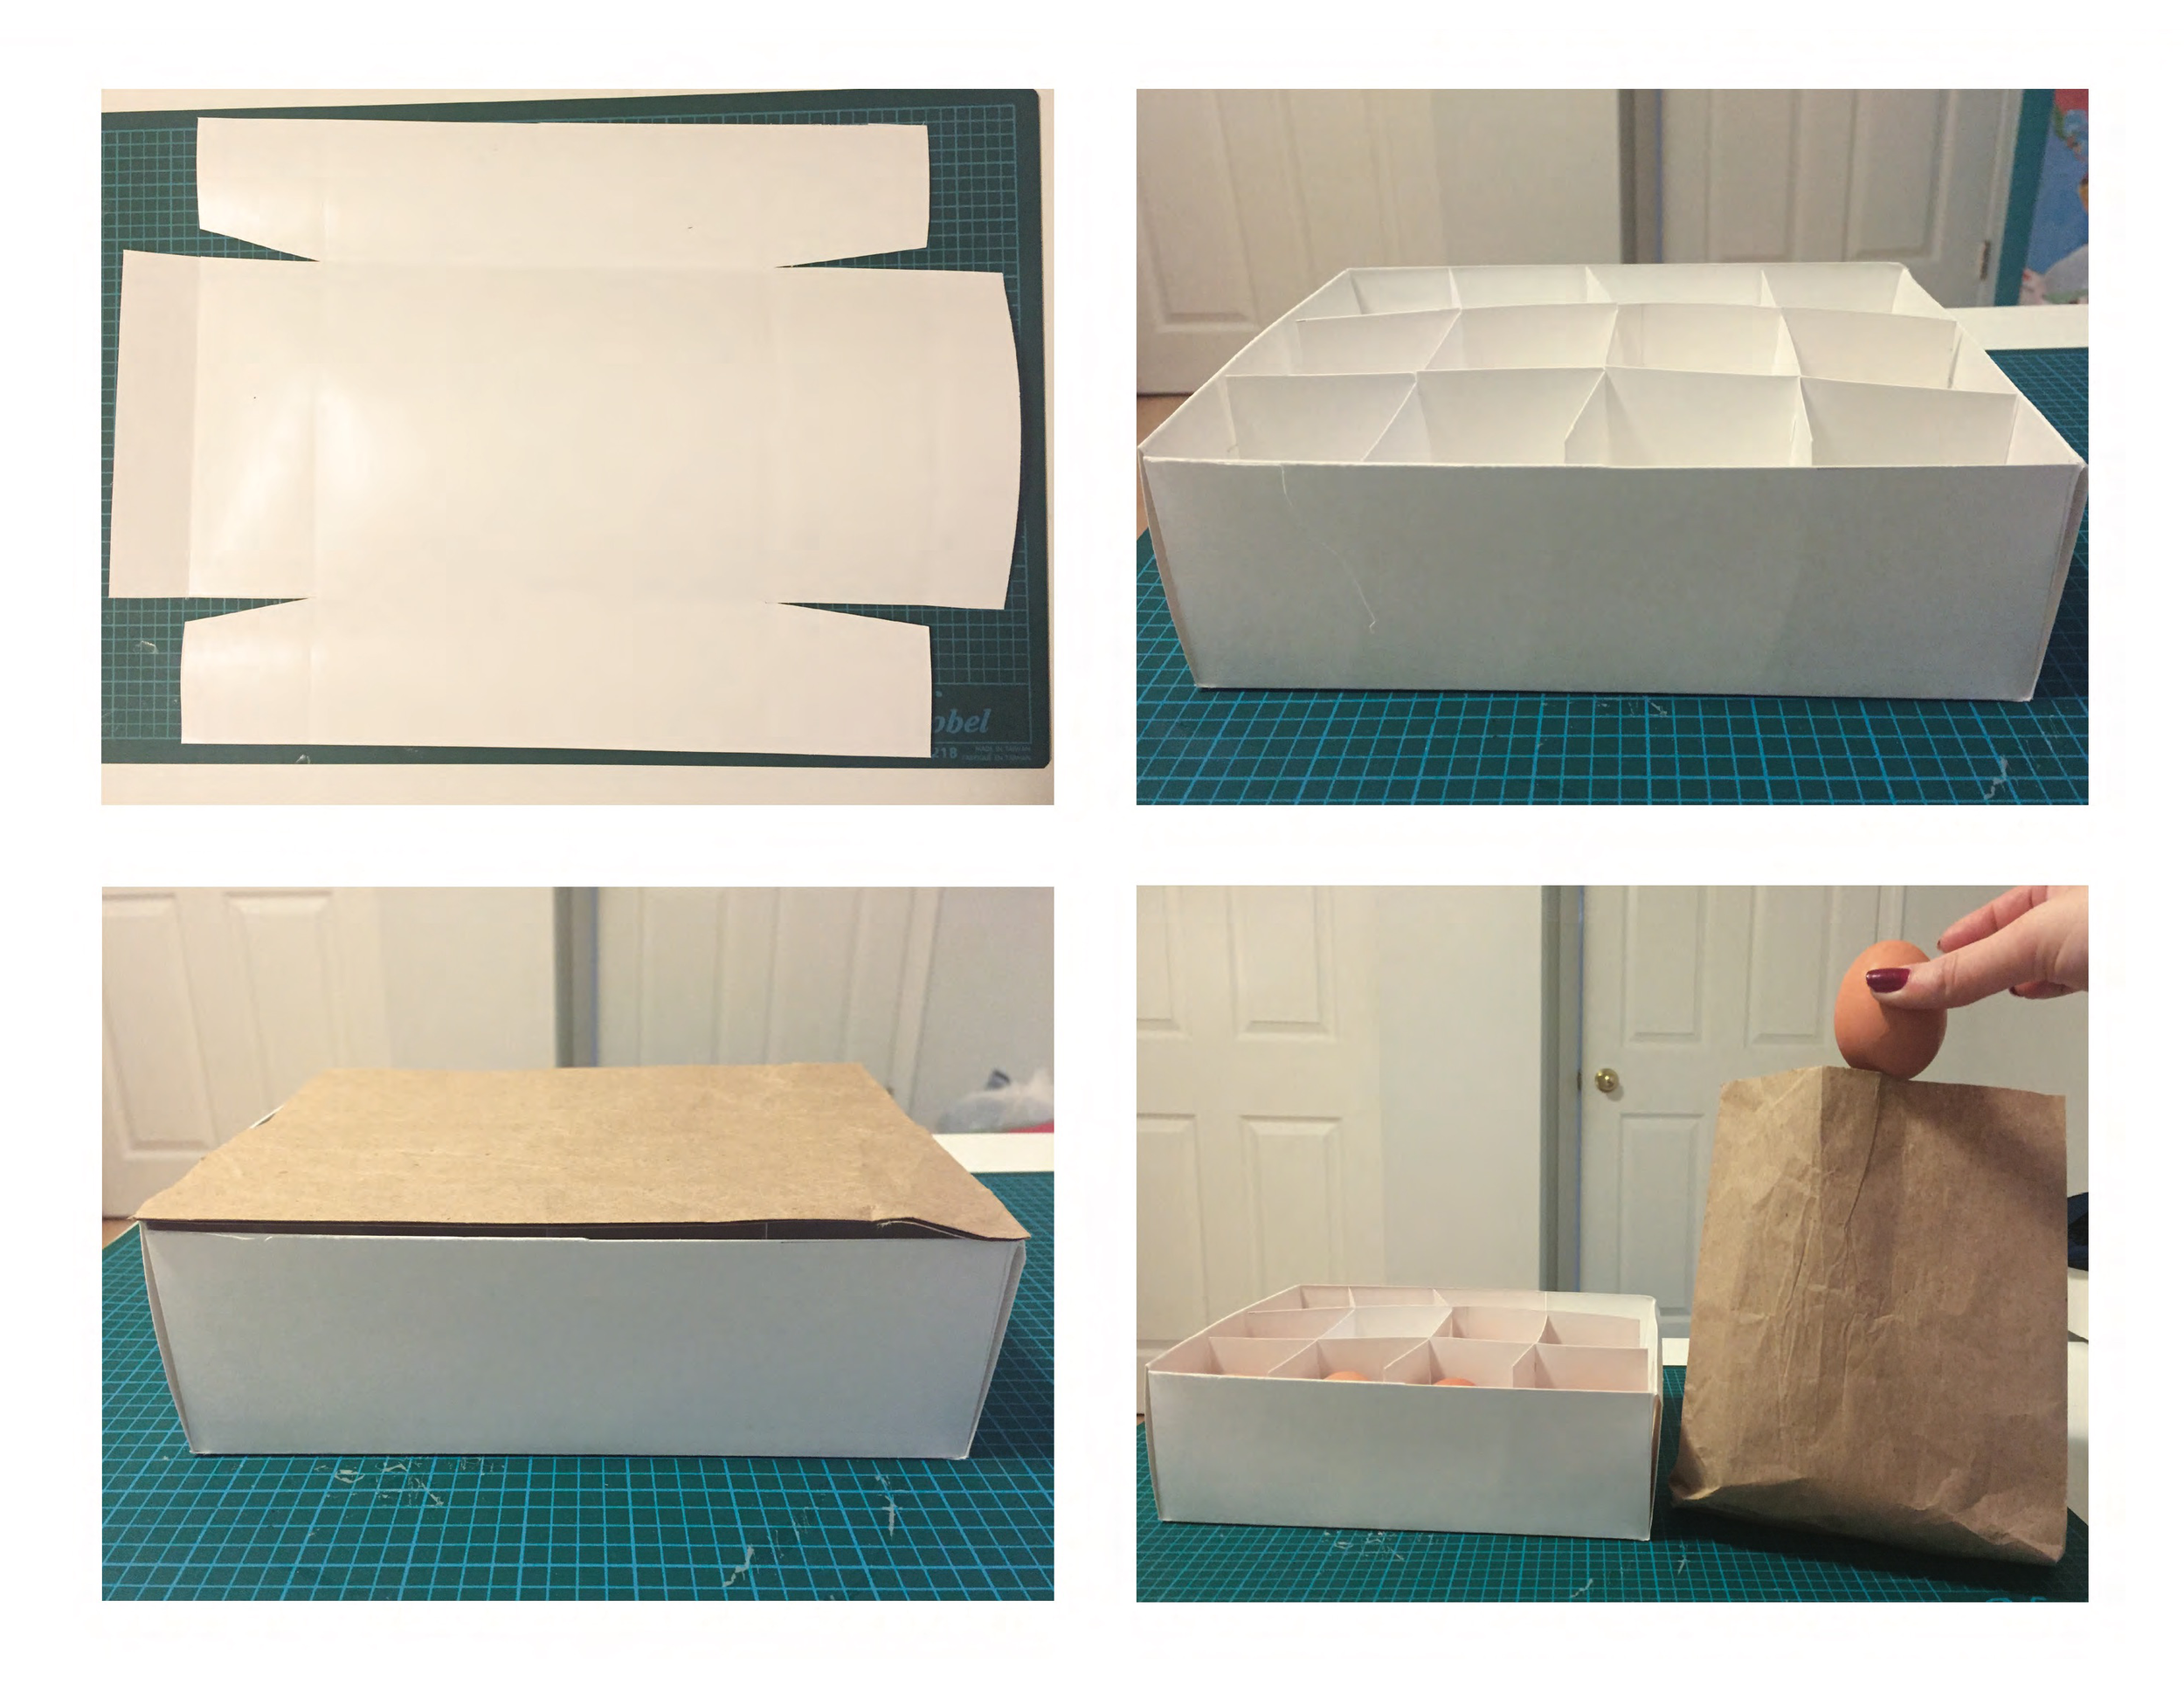 Prototype of an egg carton with a paper bag cover used for composting egg shells.